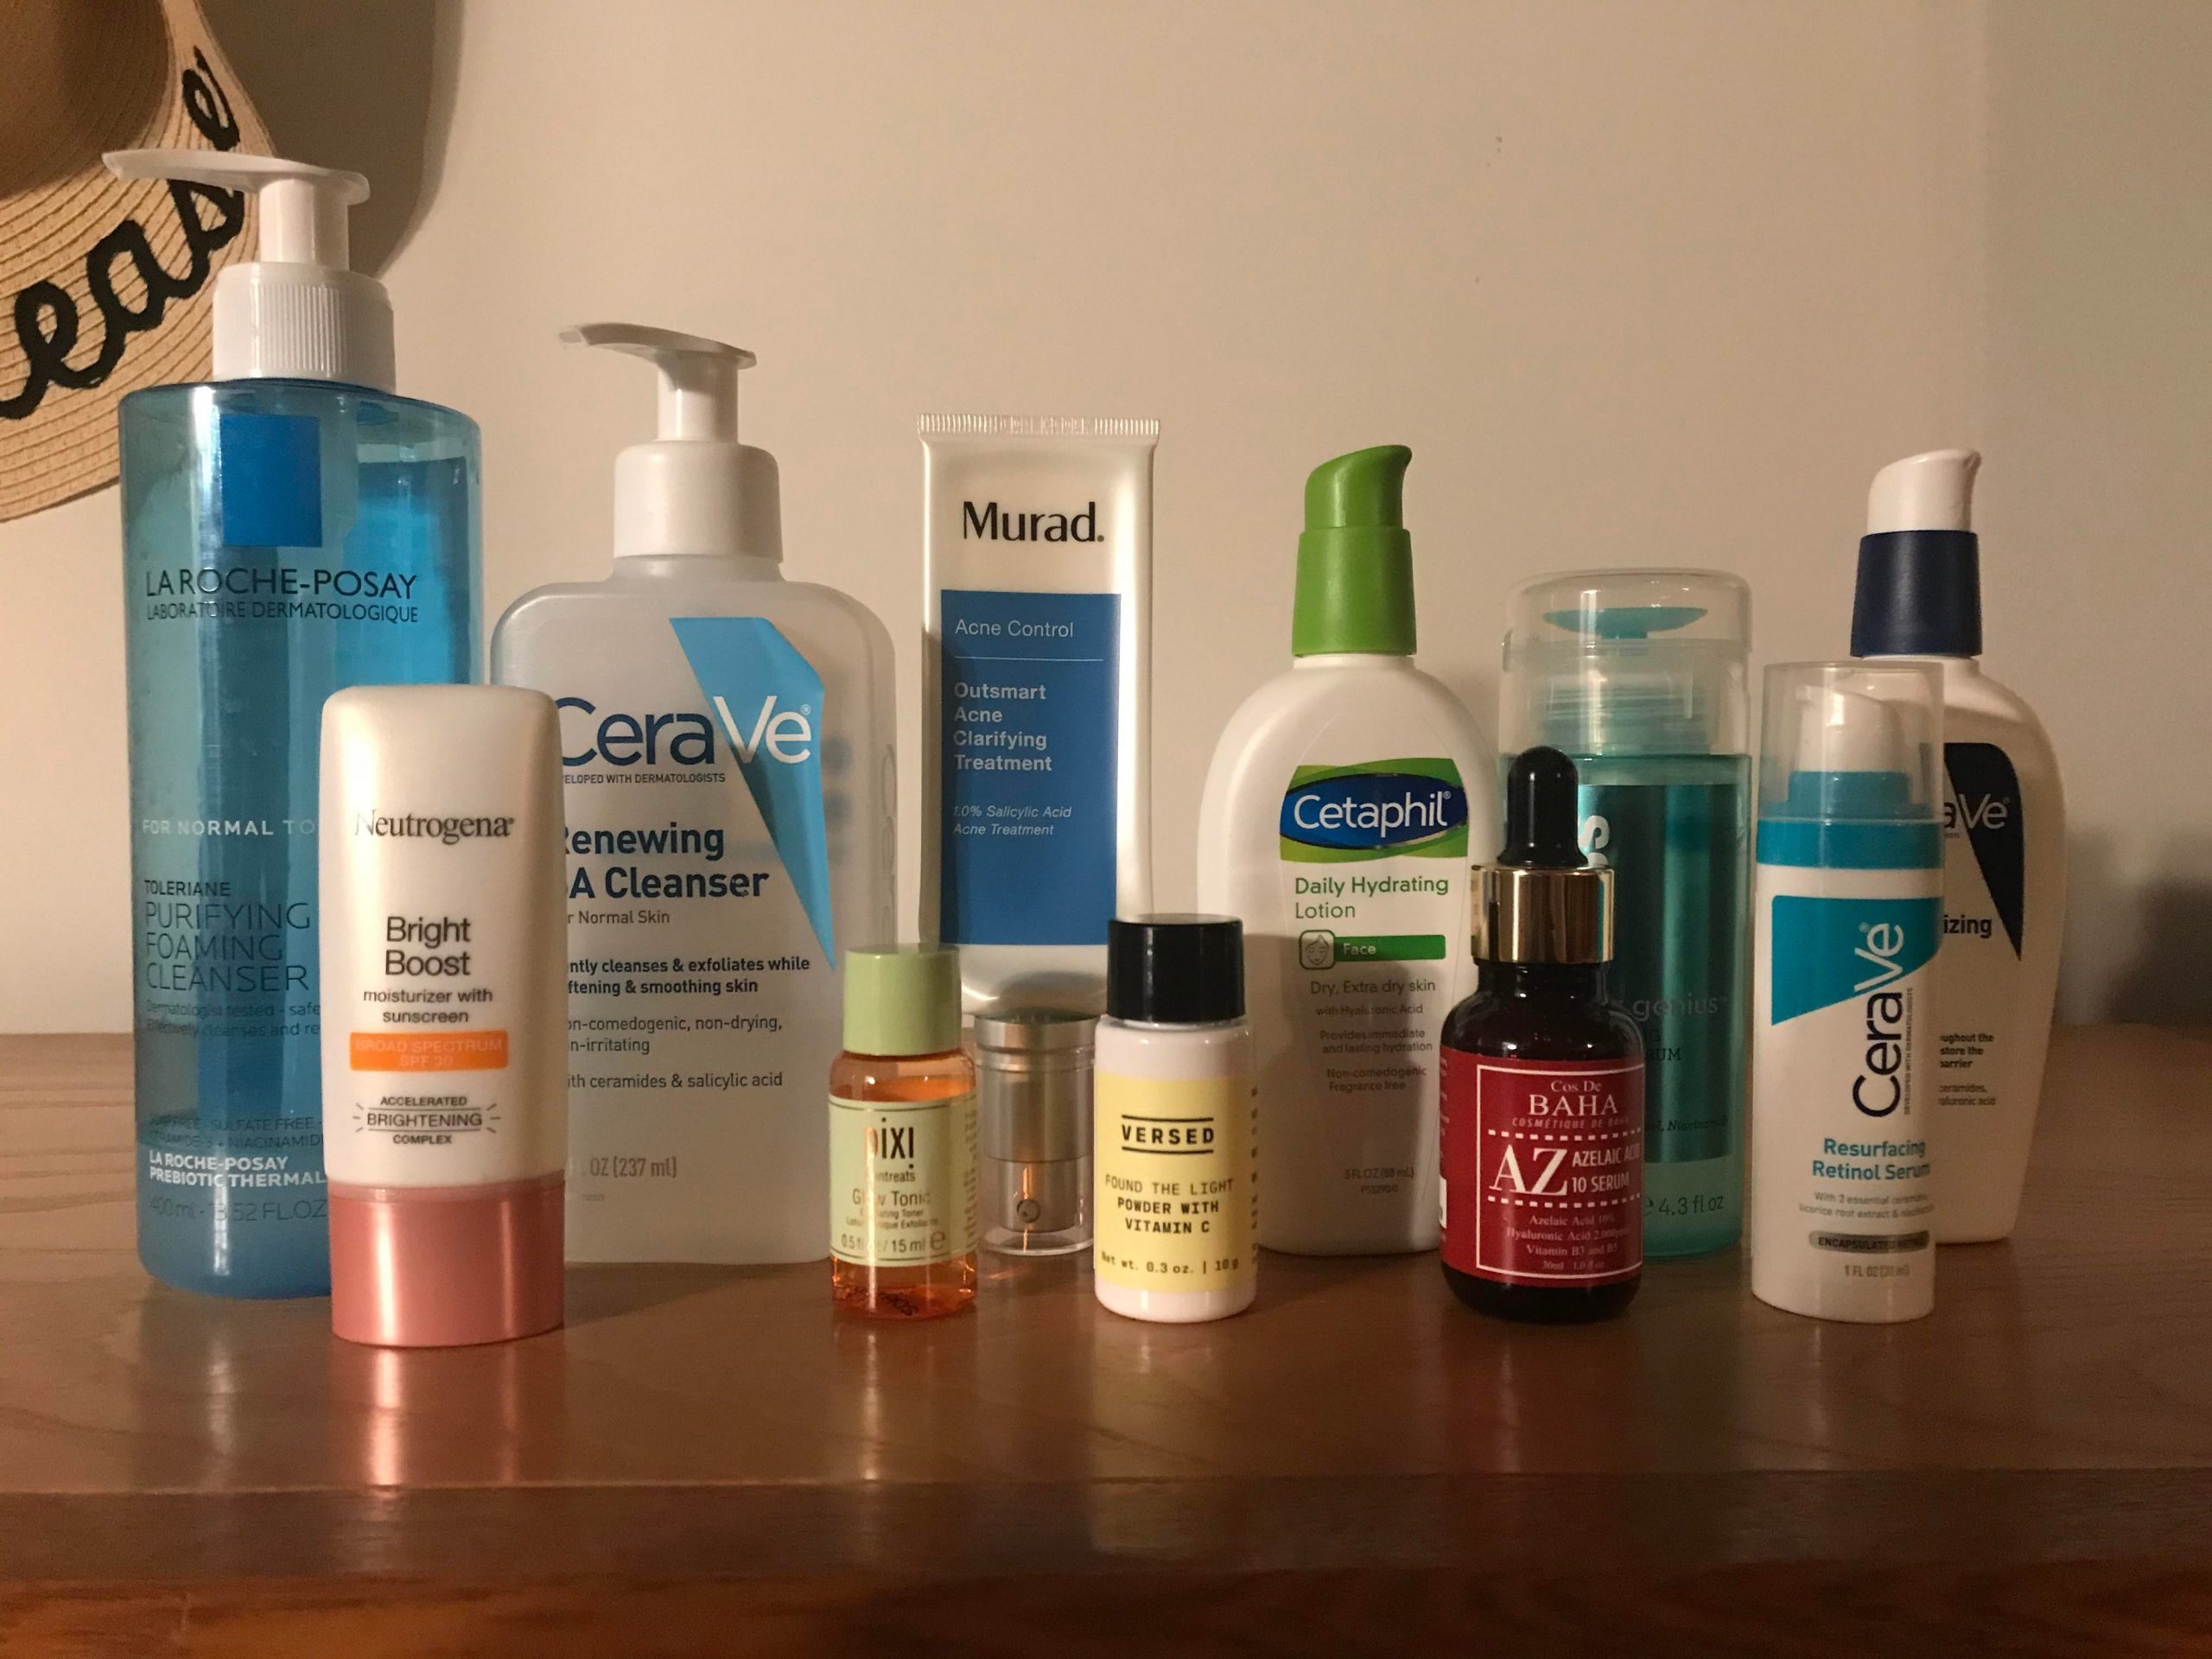 [Misc.] What the heck do people do with their product graveyard?! Seems so wasteful but something tells me no one wants your half used products especially in the age of COVID? 😔